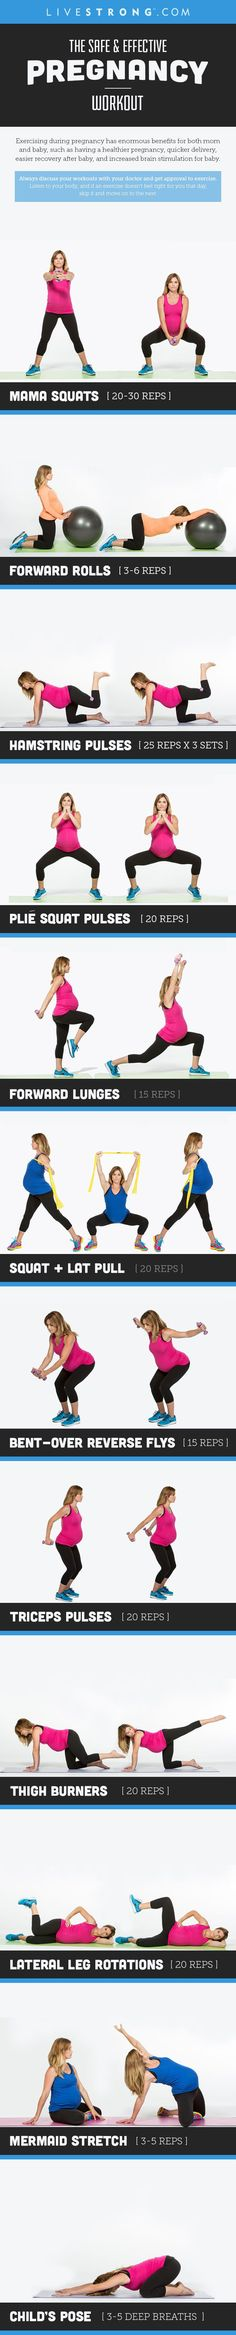 Exercising during pregnancy has enormous benefits for both mom and baby!